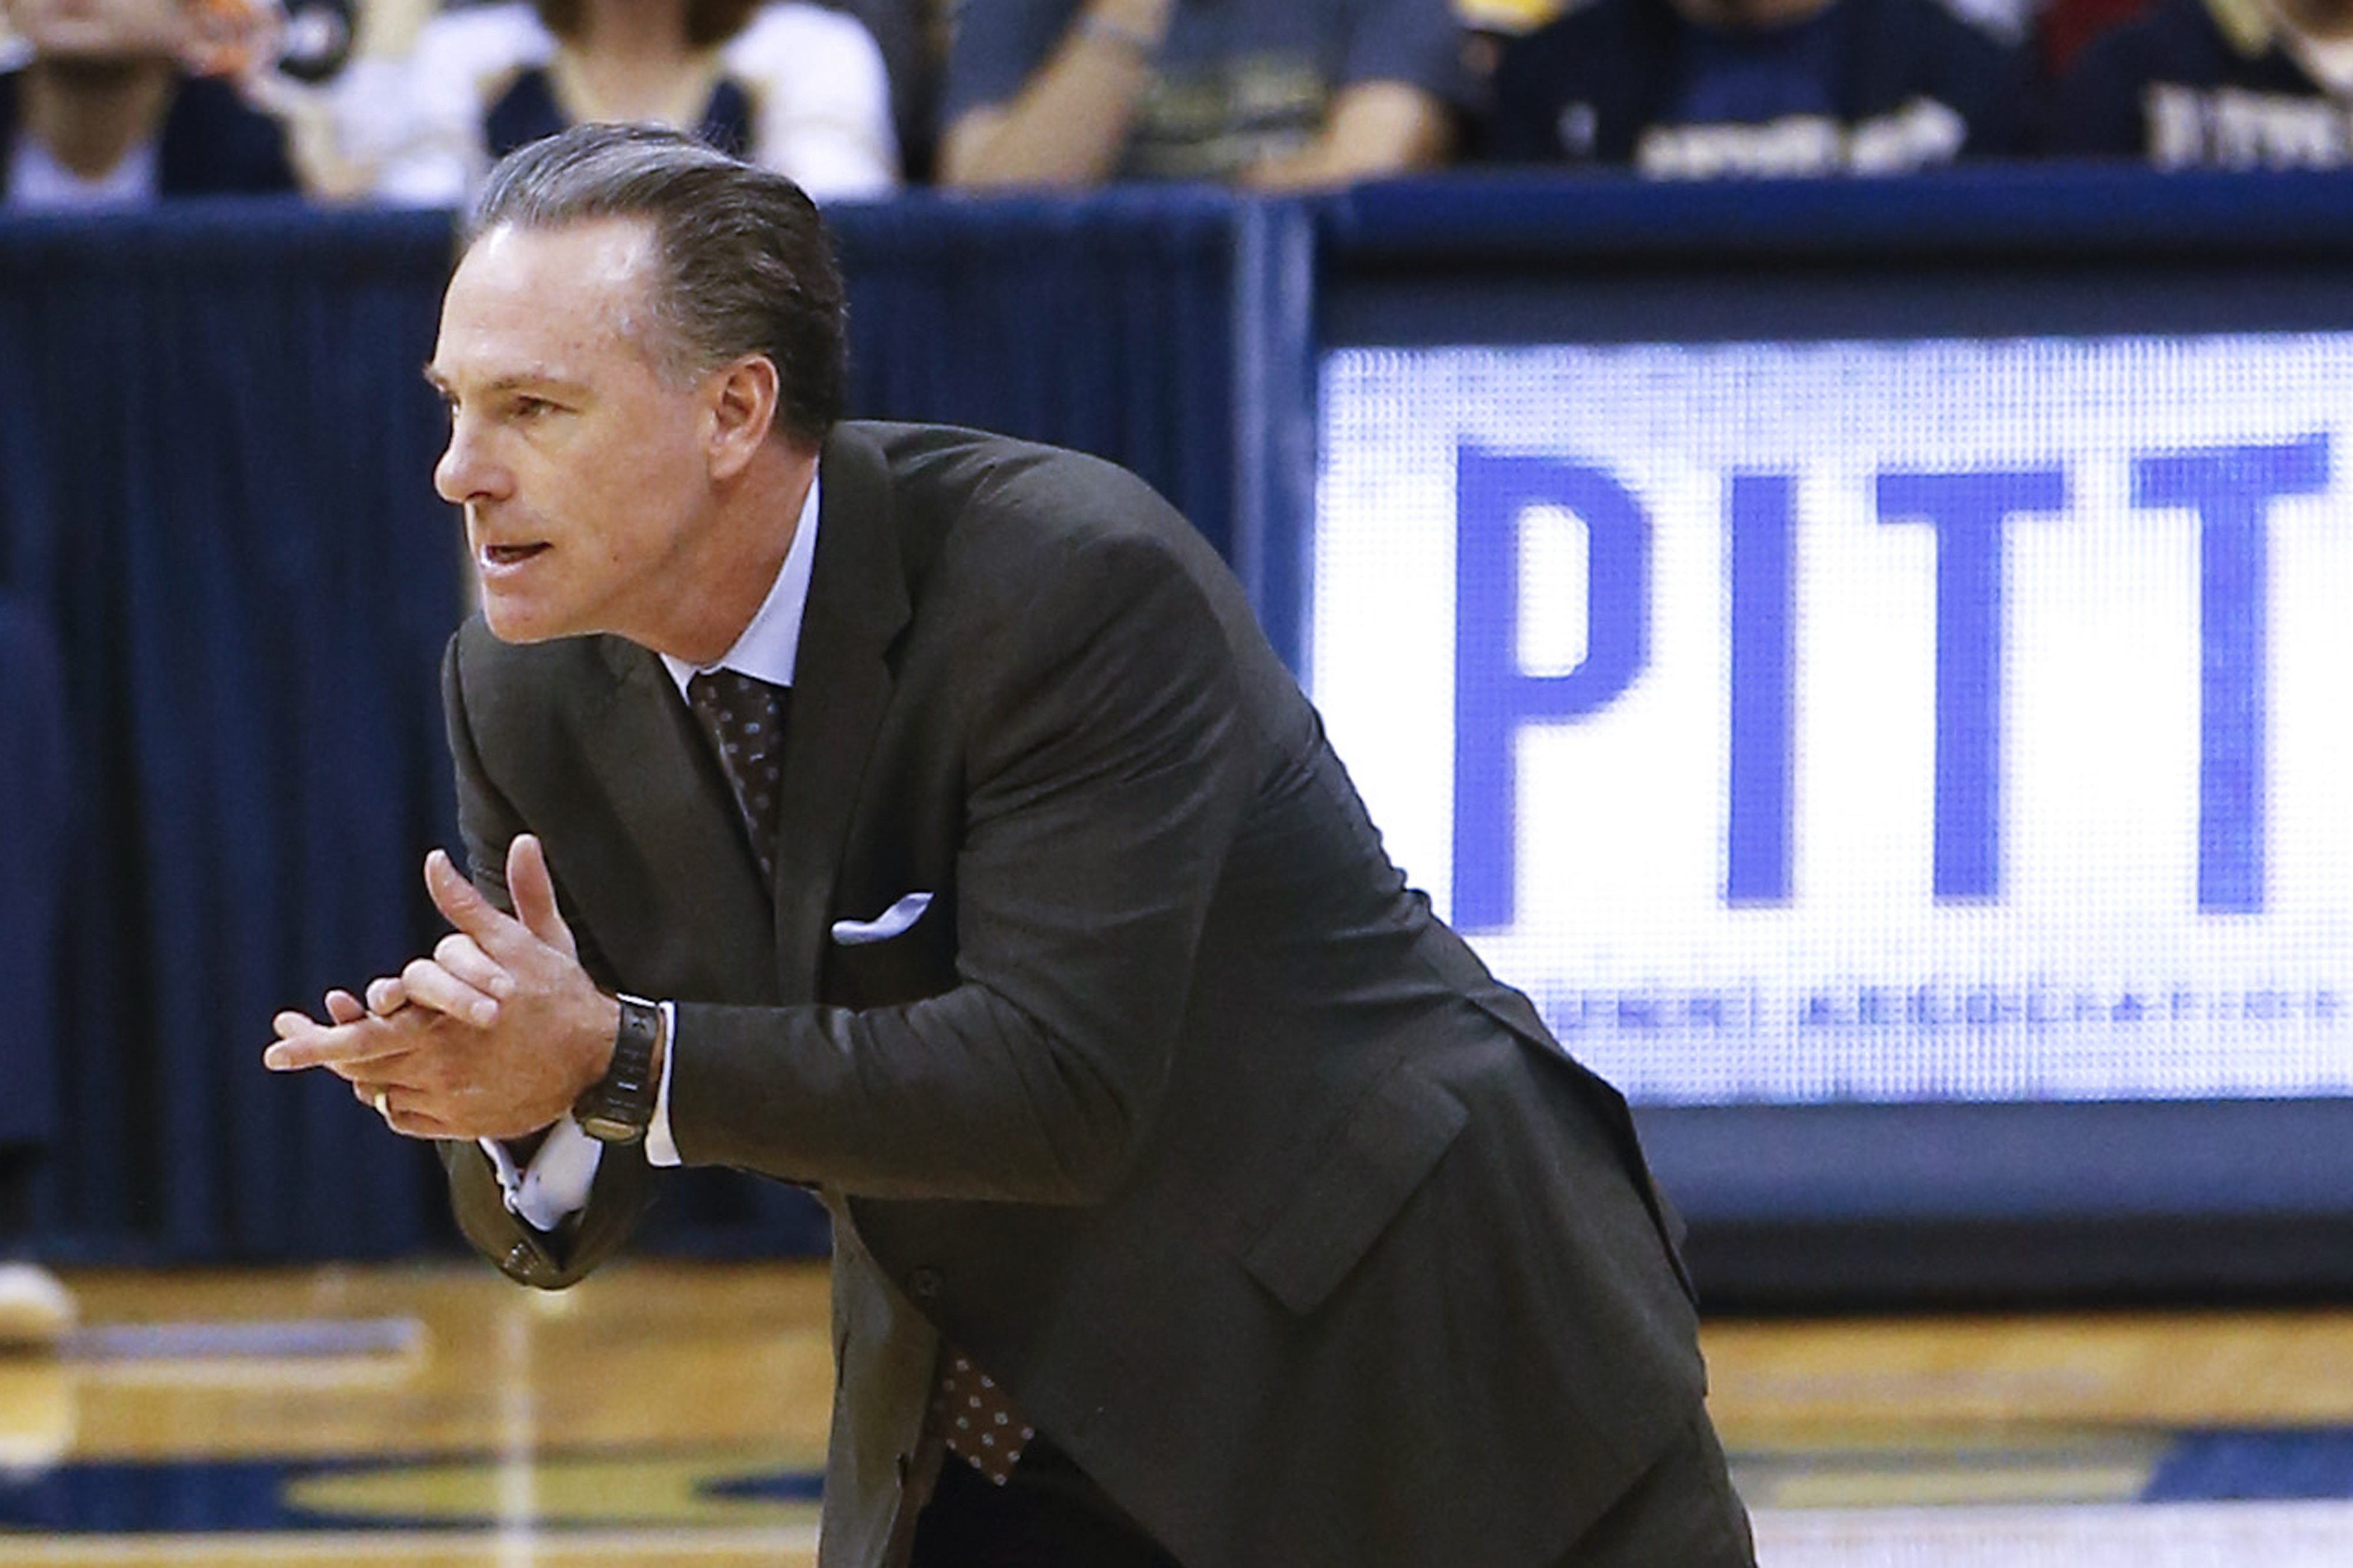 FILE - In this file photo from Dec. 23, 2015, Pittsburgh head coach Jamie Dixon works with his team during an NCAA college basketball game against Western Carolina, in Pittsburgh. The Panthers (20-10, 9-9 ACC) enter the ACC Tournament on a two-game skid a